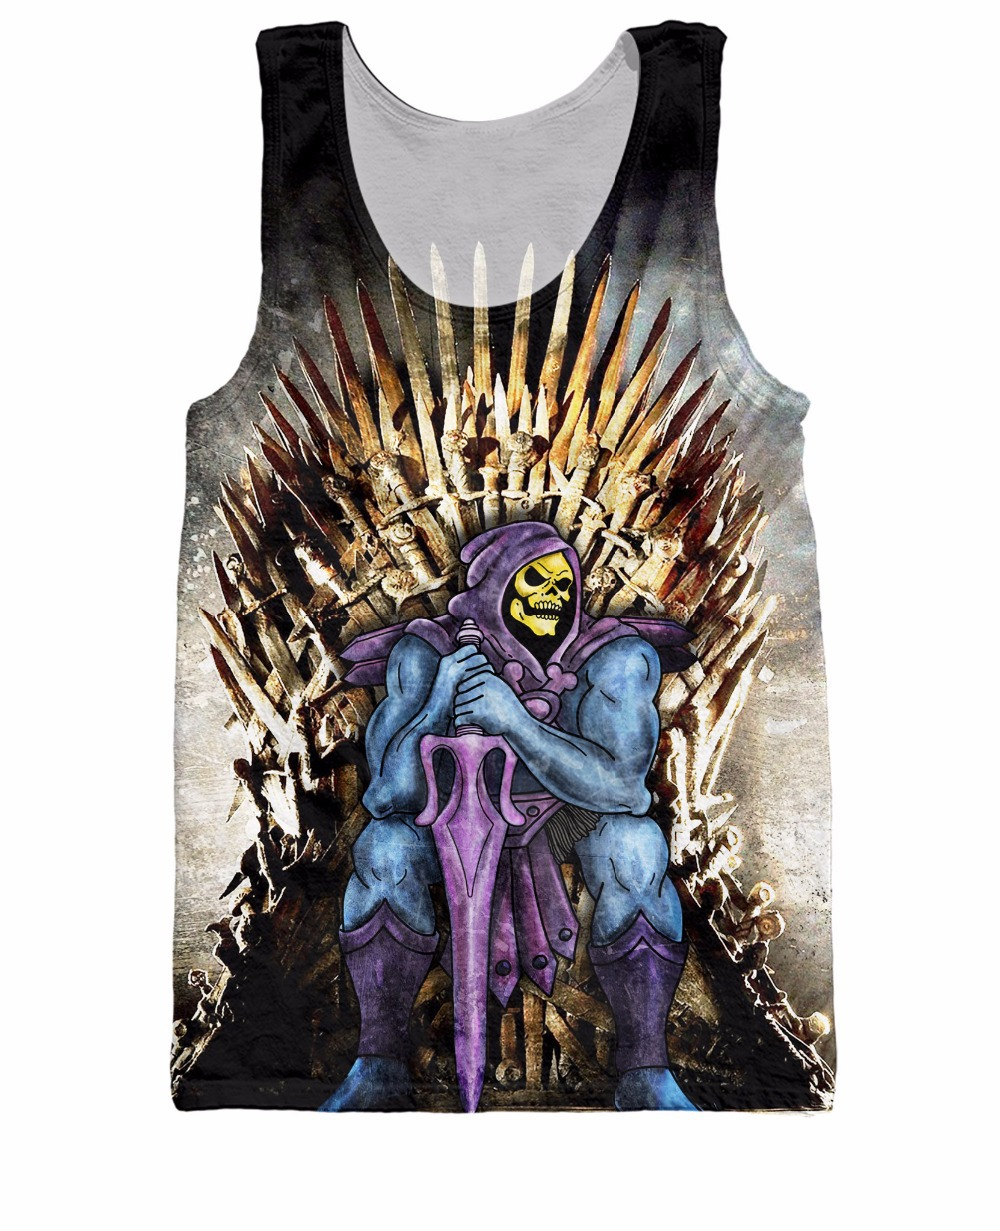 Unisex Women Men Basketball Jersey Skeletor Conquers the Realm Tank Top Cartoon He-Man and the Masters of the Universe Vest tees(China (Mainland))